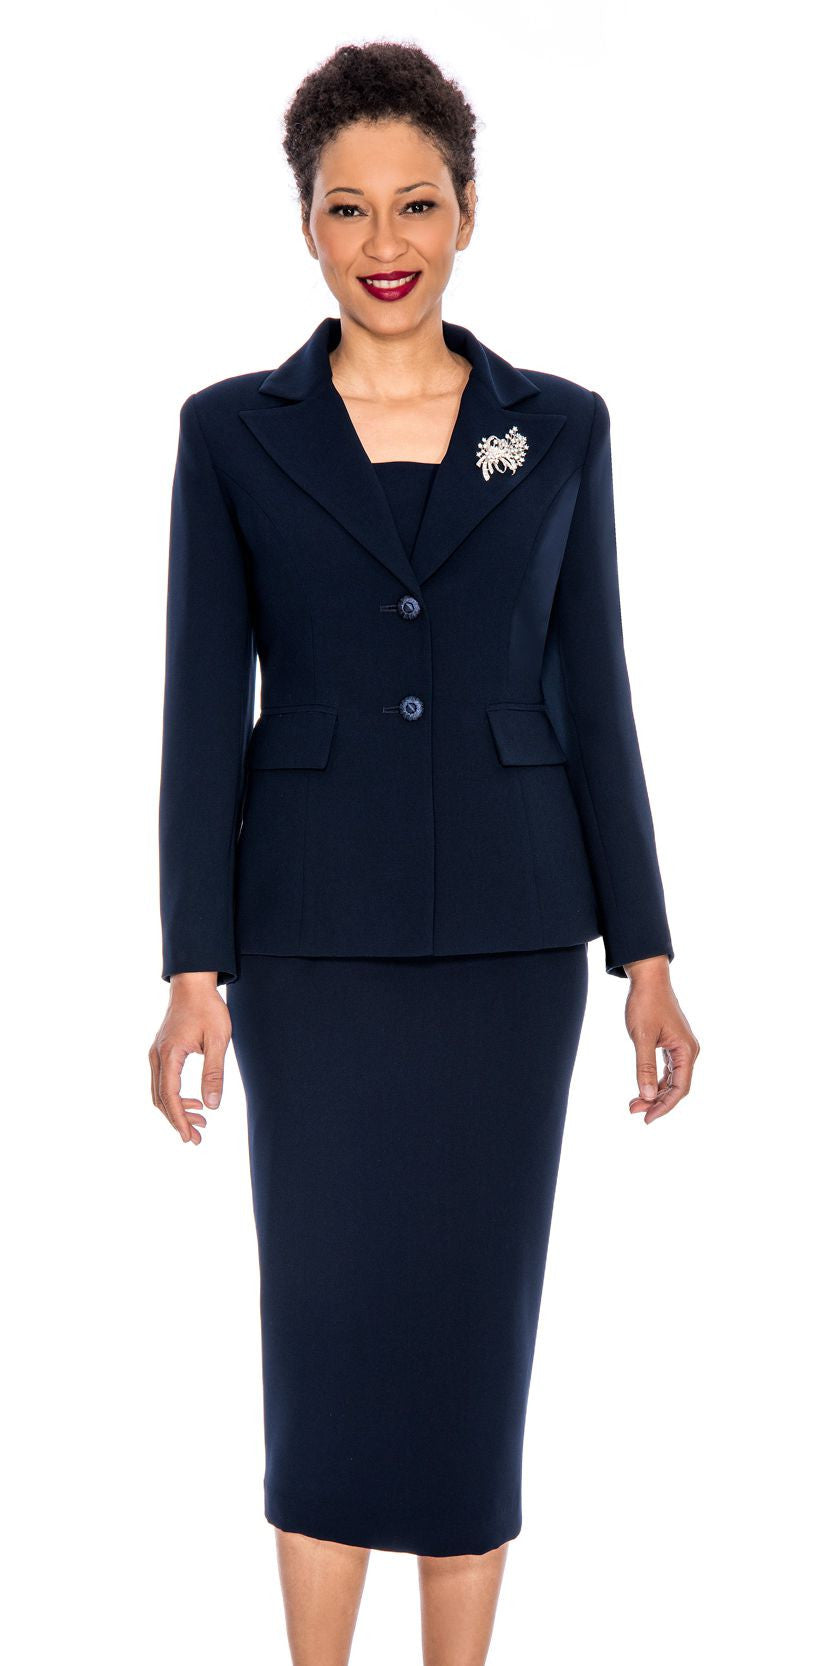 Giovanna Usher Suit 0710-Navy - Church Suits For Less